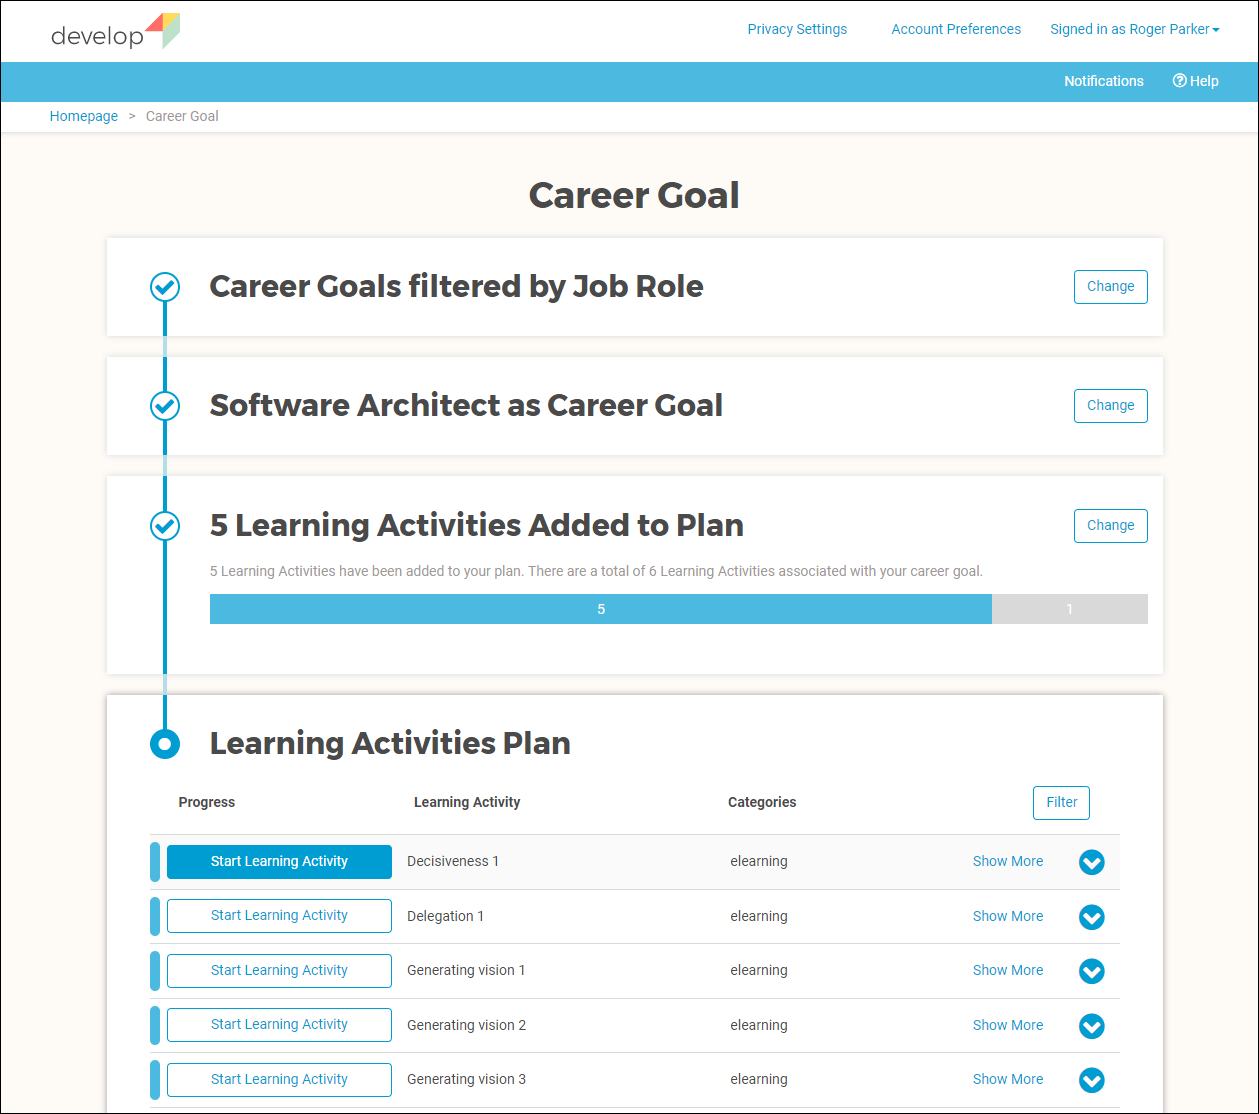 Learning Activities Plan